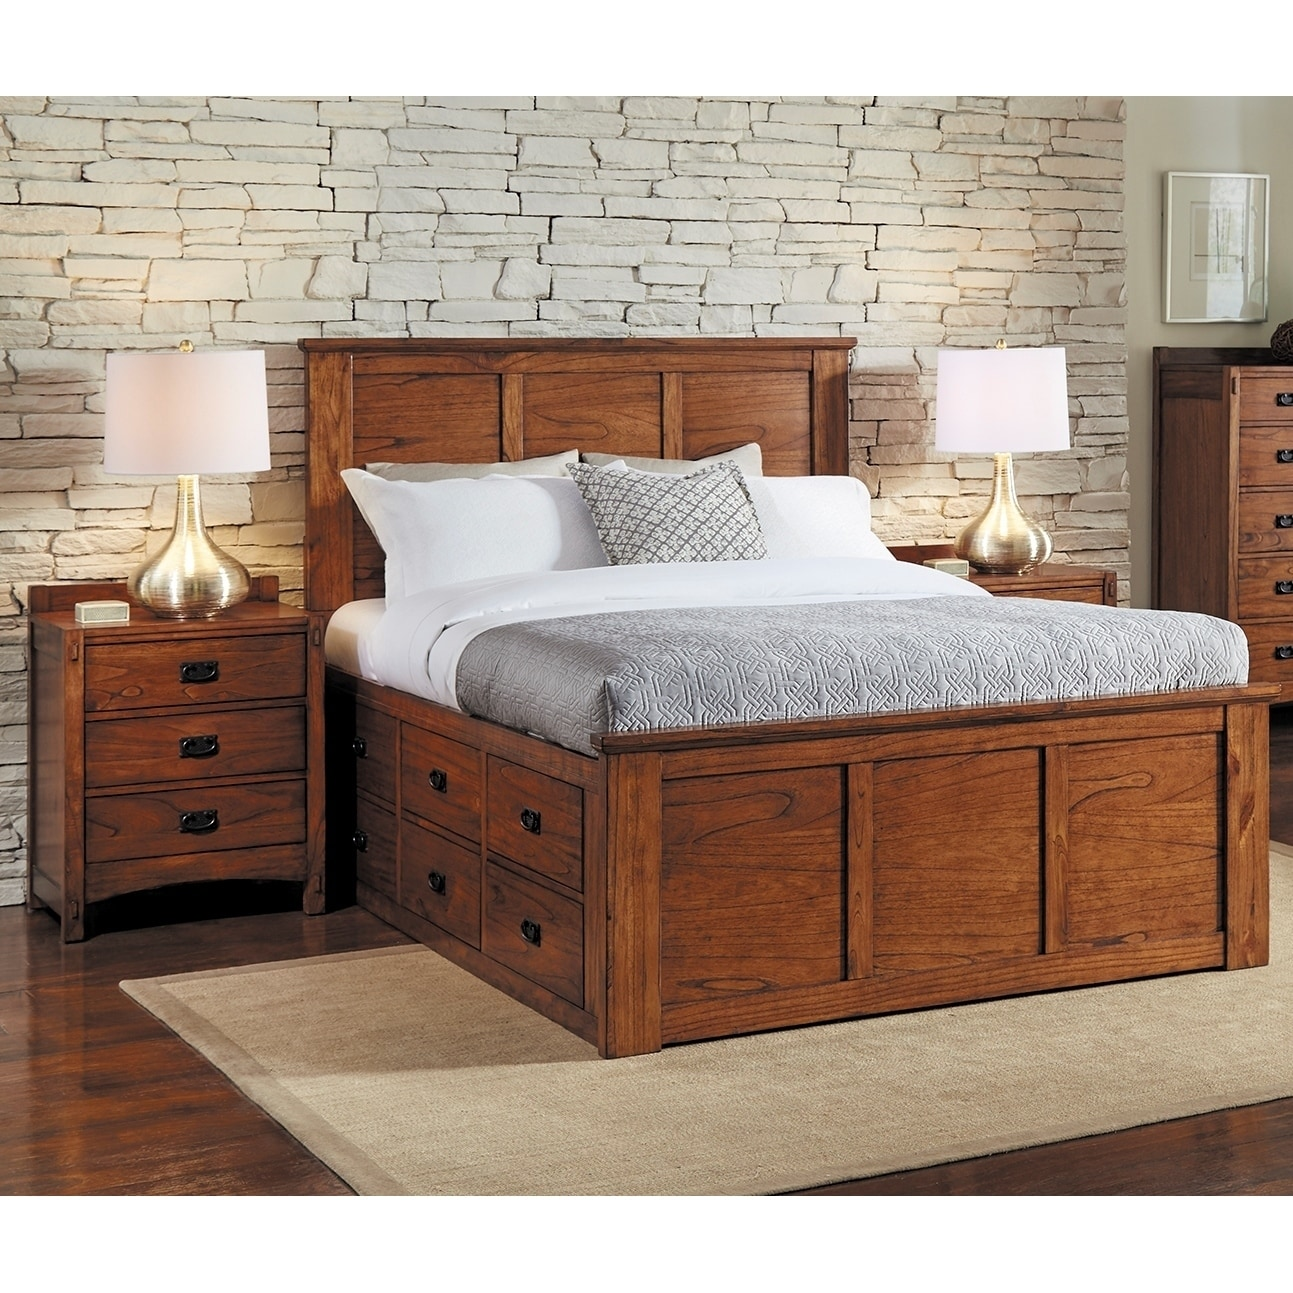 Simply Solid Aira Oak Wood Storage Bed (King), Brown